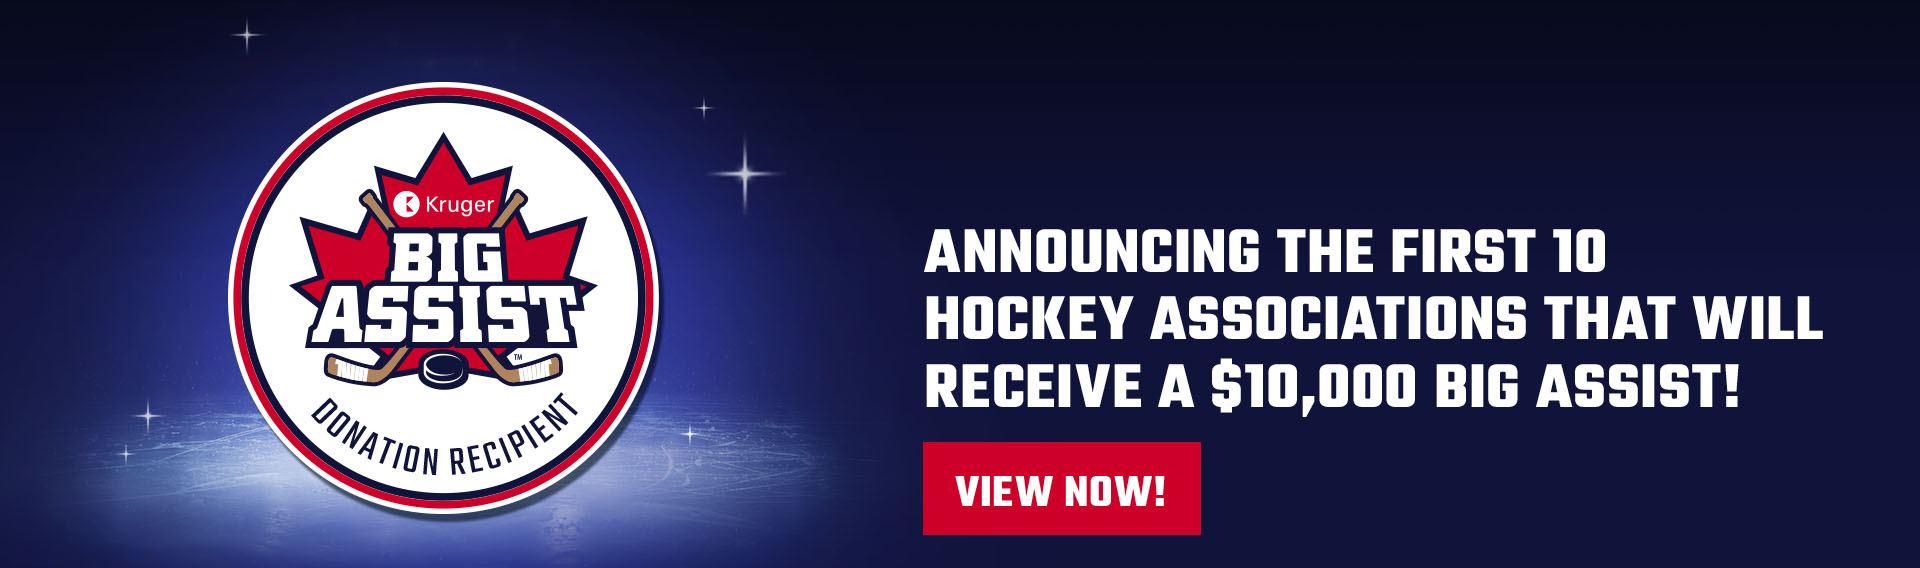 Announcing the first 10 hockey associations that will receive a $10,000 big assist!